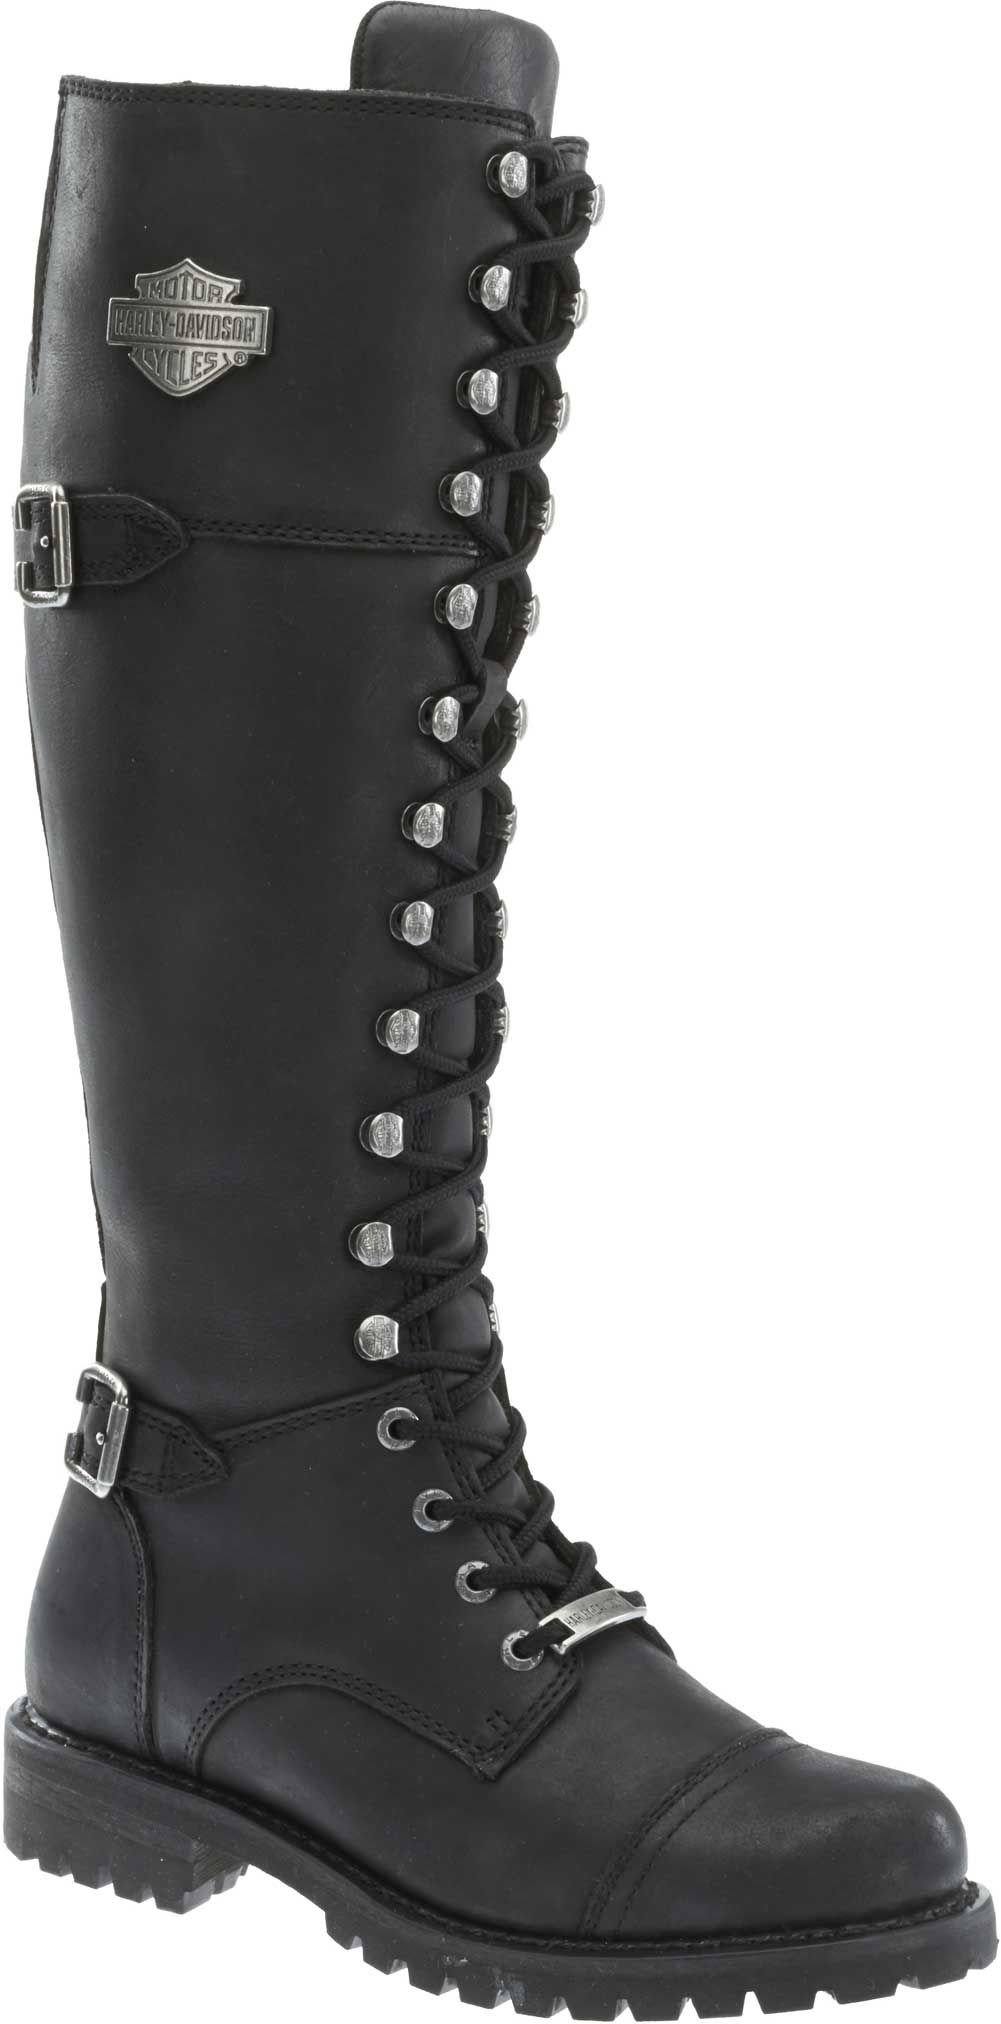 Womens Harley Davidson Women's Summer Motorcycle Boot Outlet Online Sale Size 37